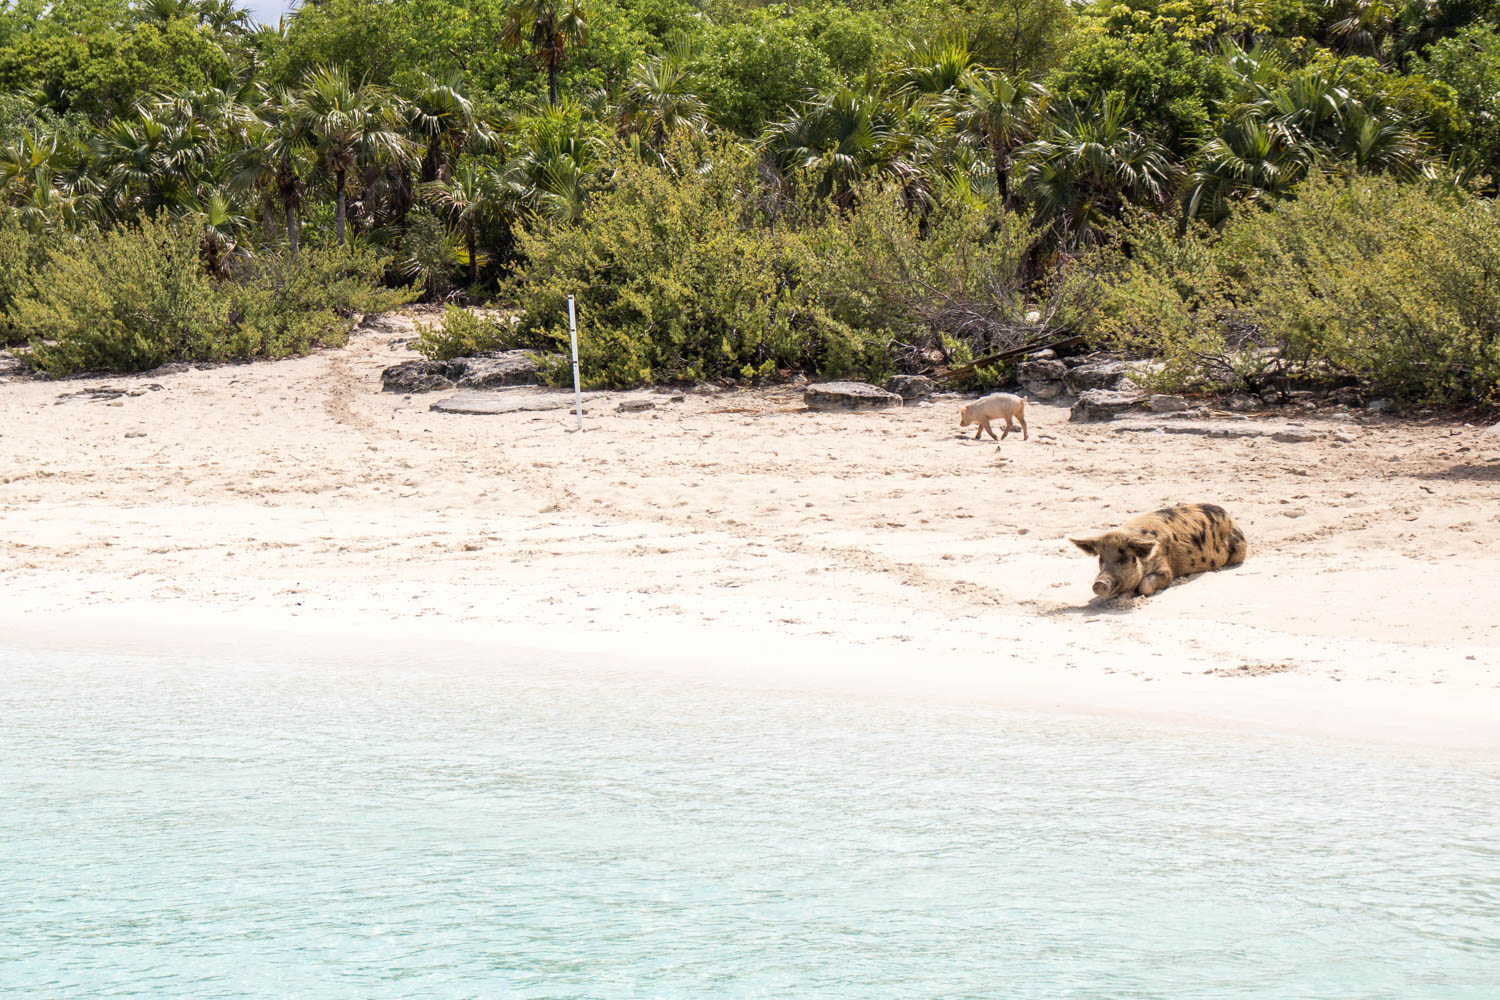 You can take a Pig Island Bahamas tour from Nassau or Fort Lauderdale. Big Major Cay (Pig Island), the island with pigs, is home to 25 pigs and piglets ranging in size.